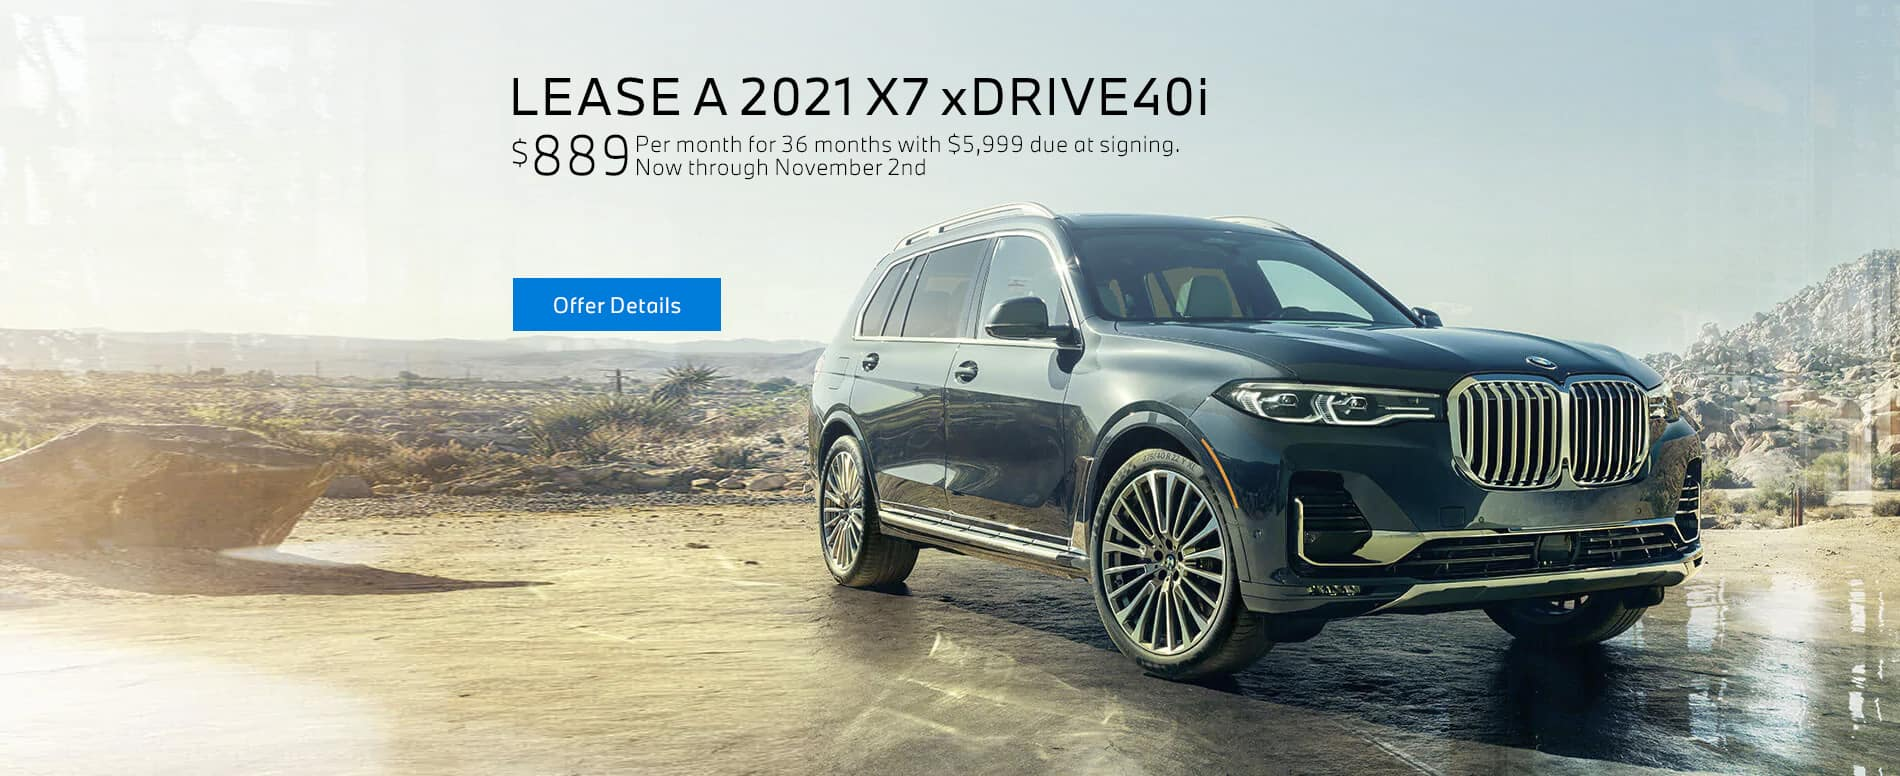 Lease a 2021 BMW X7 xDRIVE40i for $889/mo at BMW of Fort Walton Beach